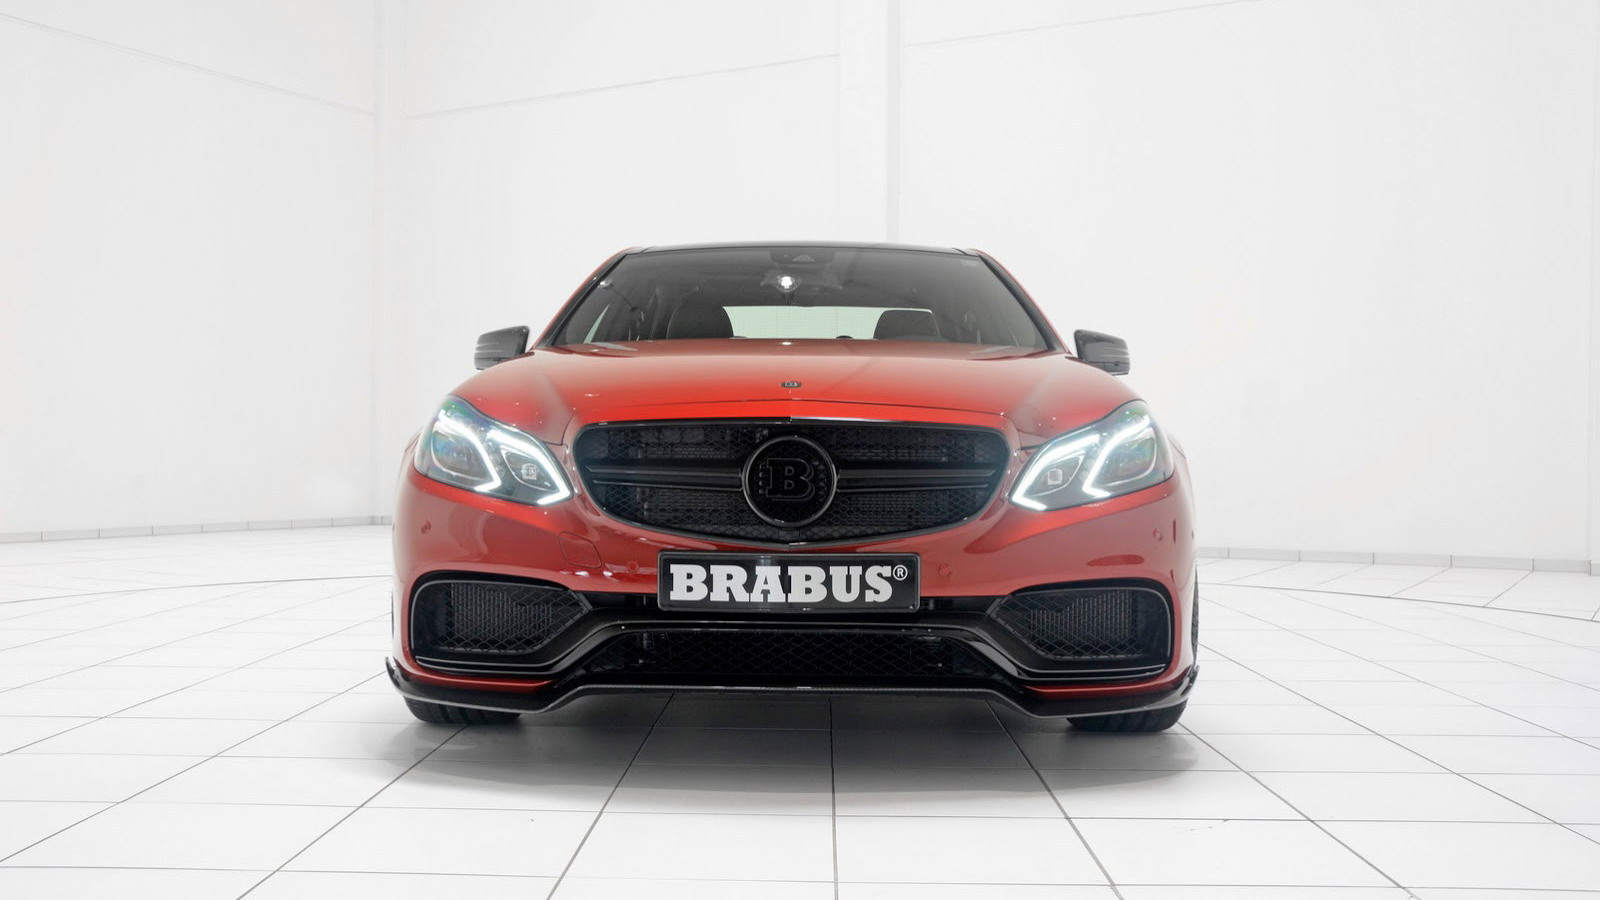 Brabus 850 6.0 Biturbo based on the 2014 Mercedes-Benz E63 AMG